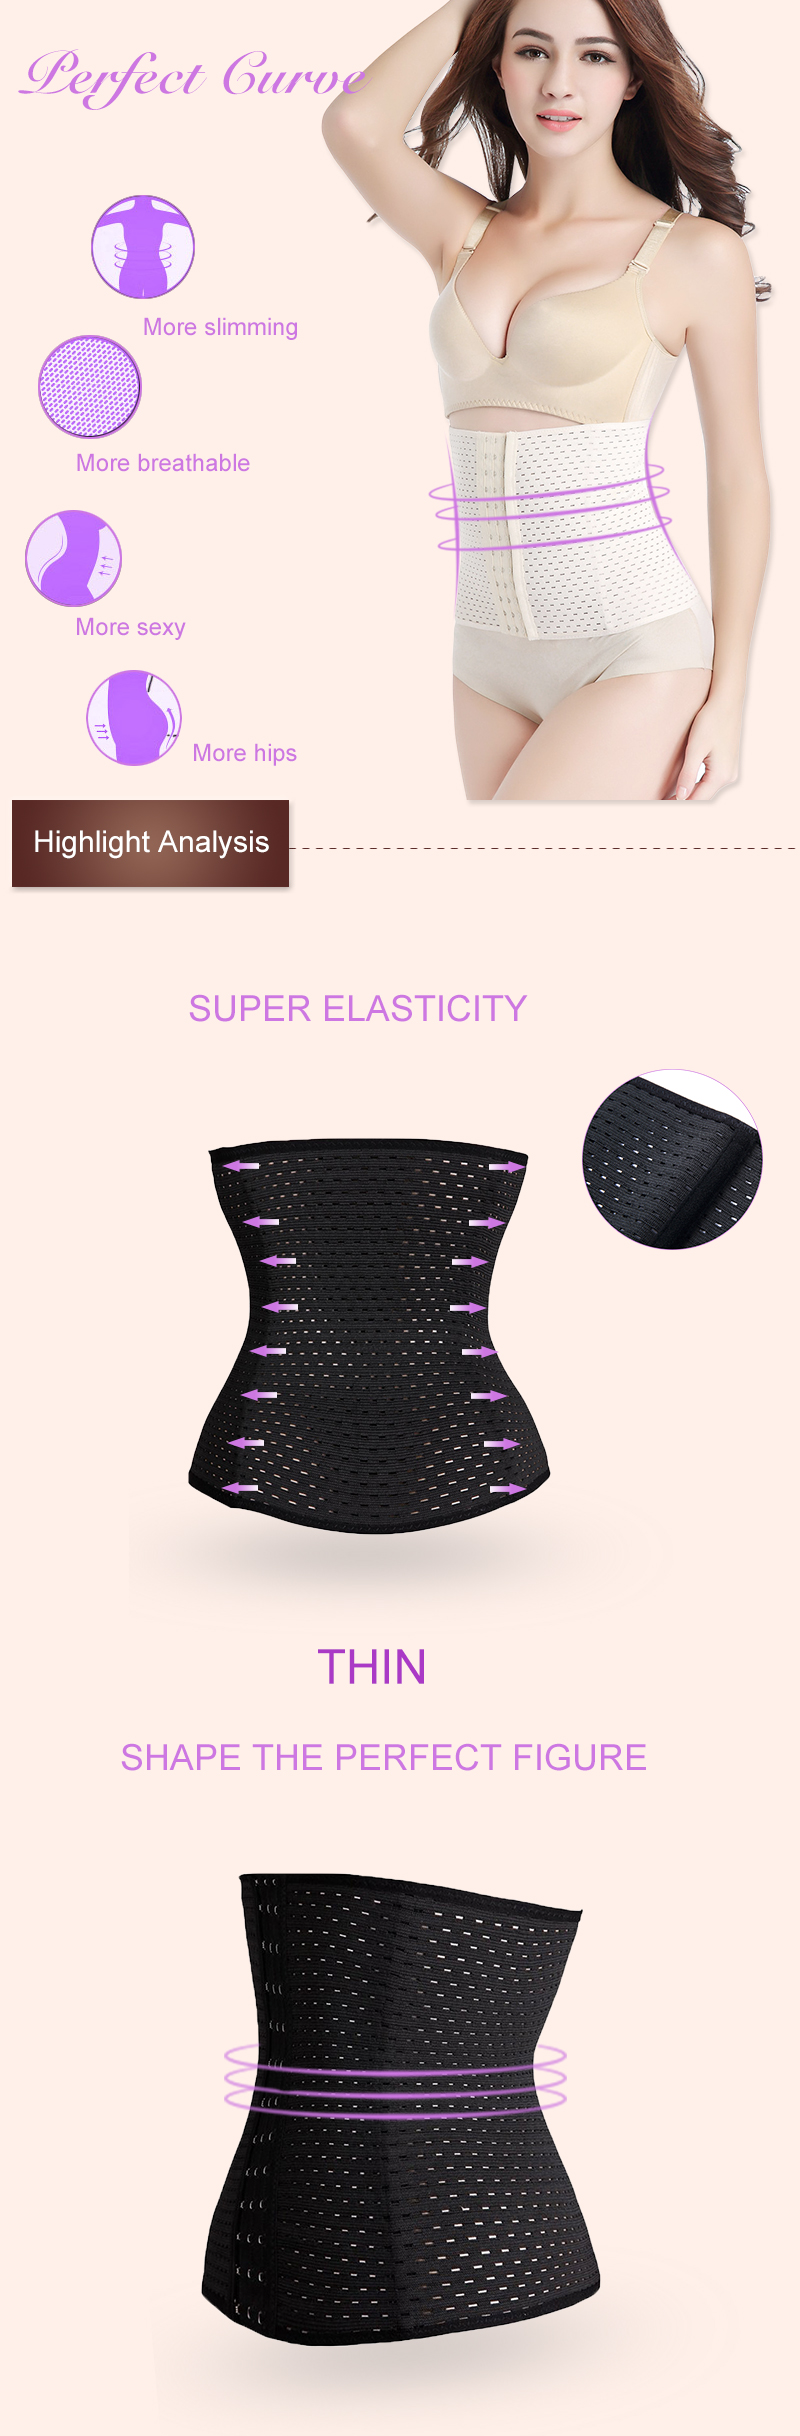 waist trainer, best waist trainer, plus size waist trainer